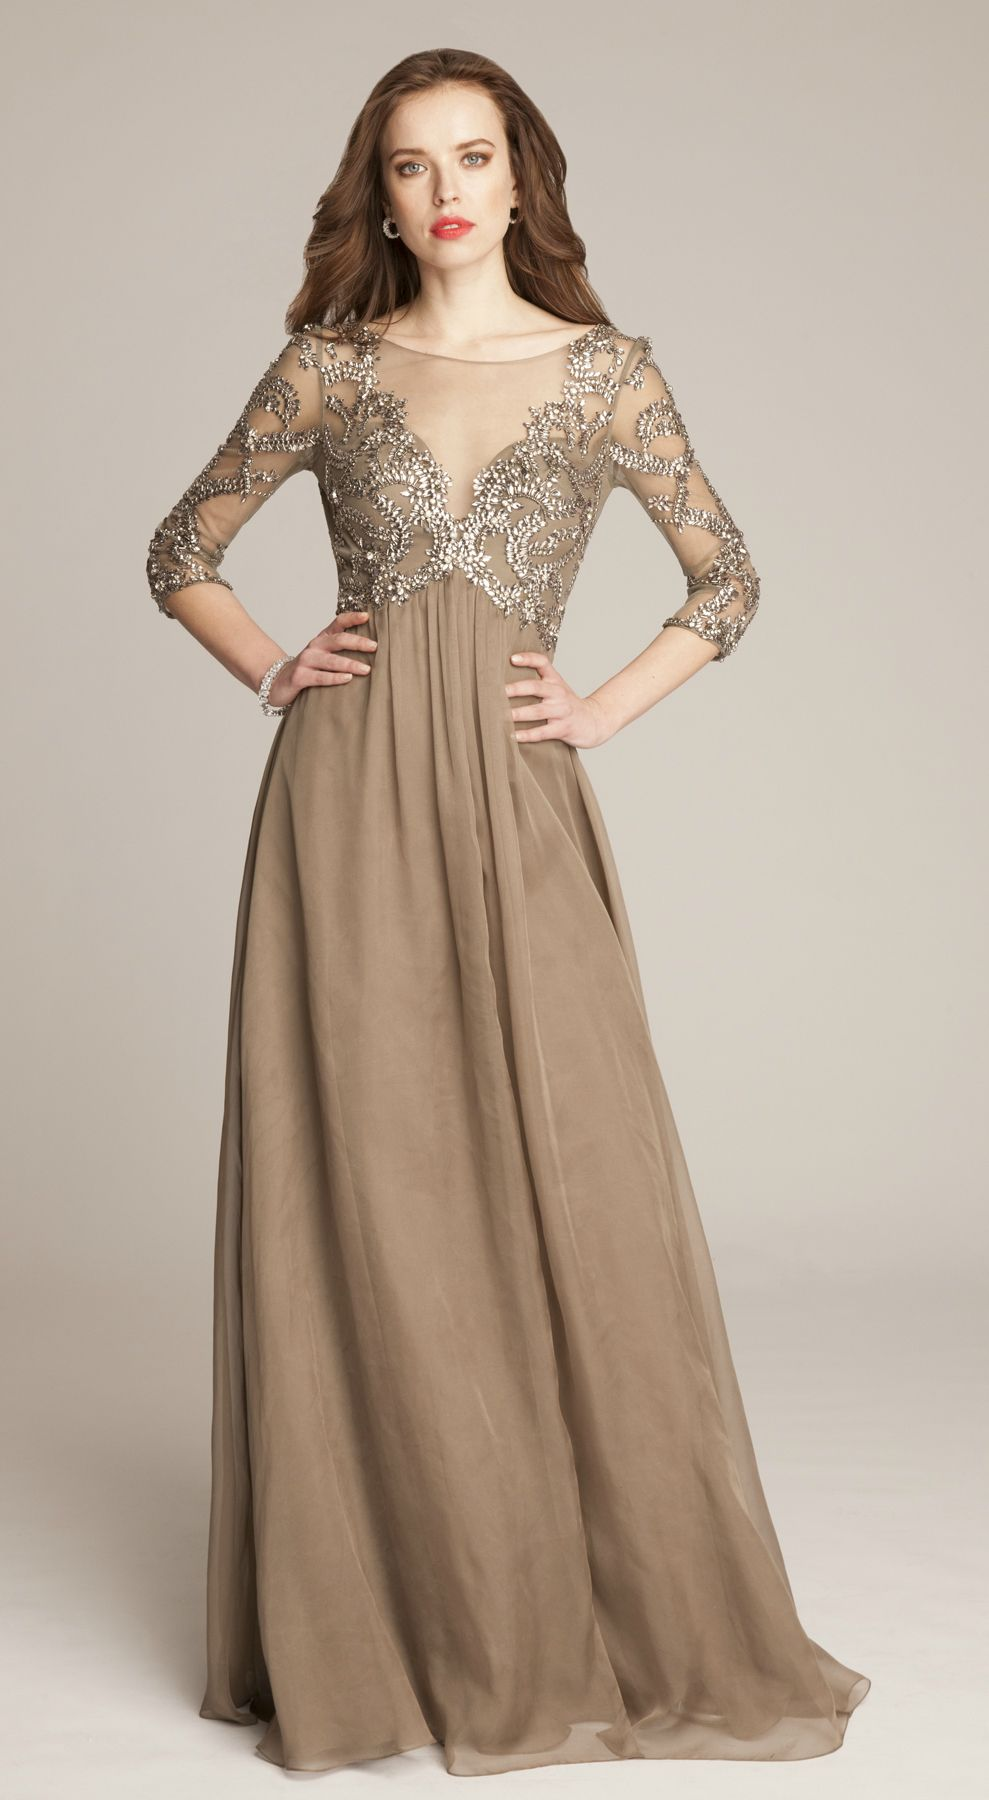 Mother Of The Bride Dresses For Fall Weddings 12